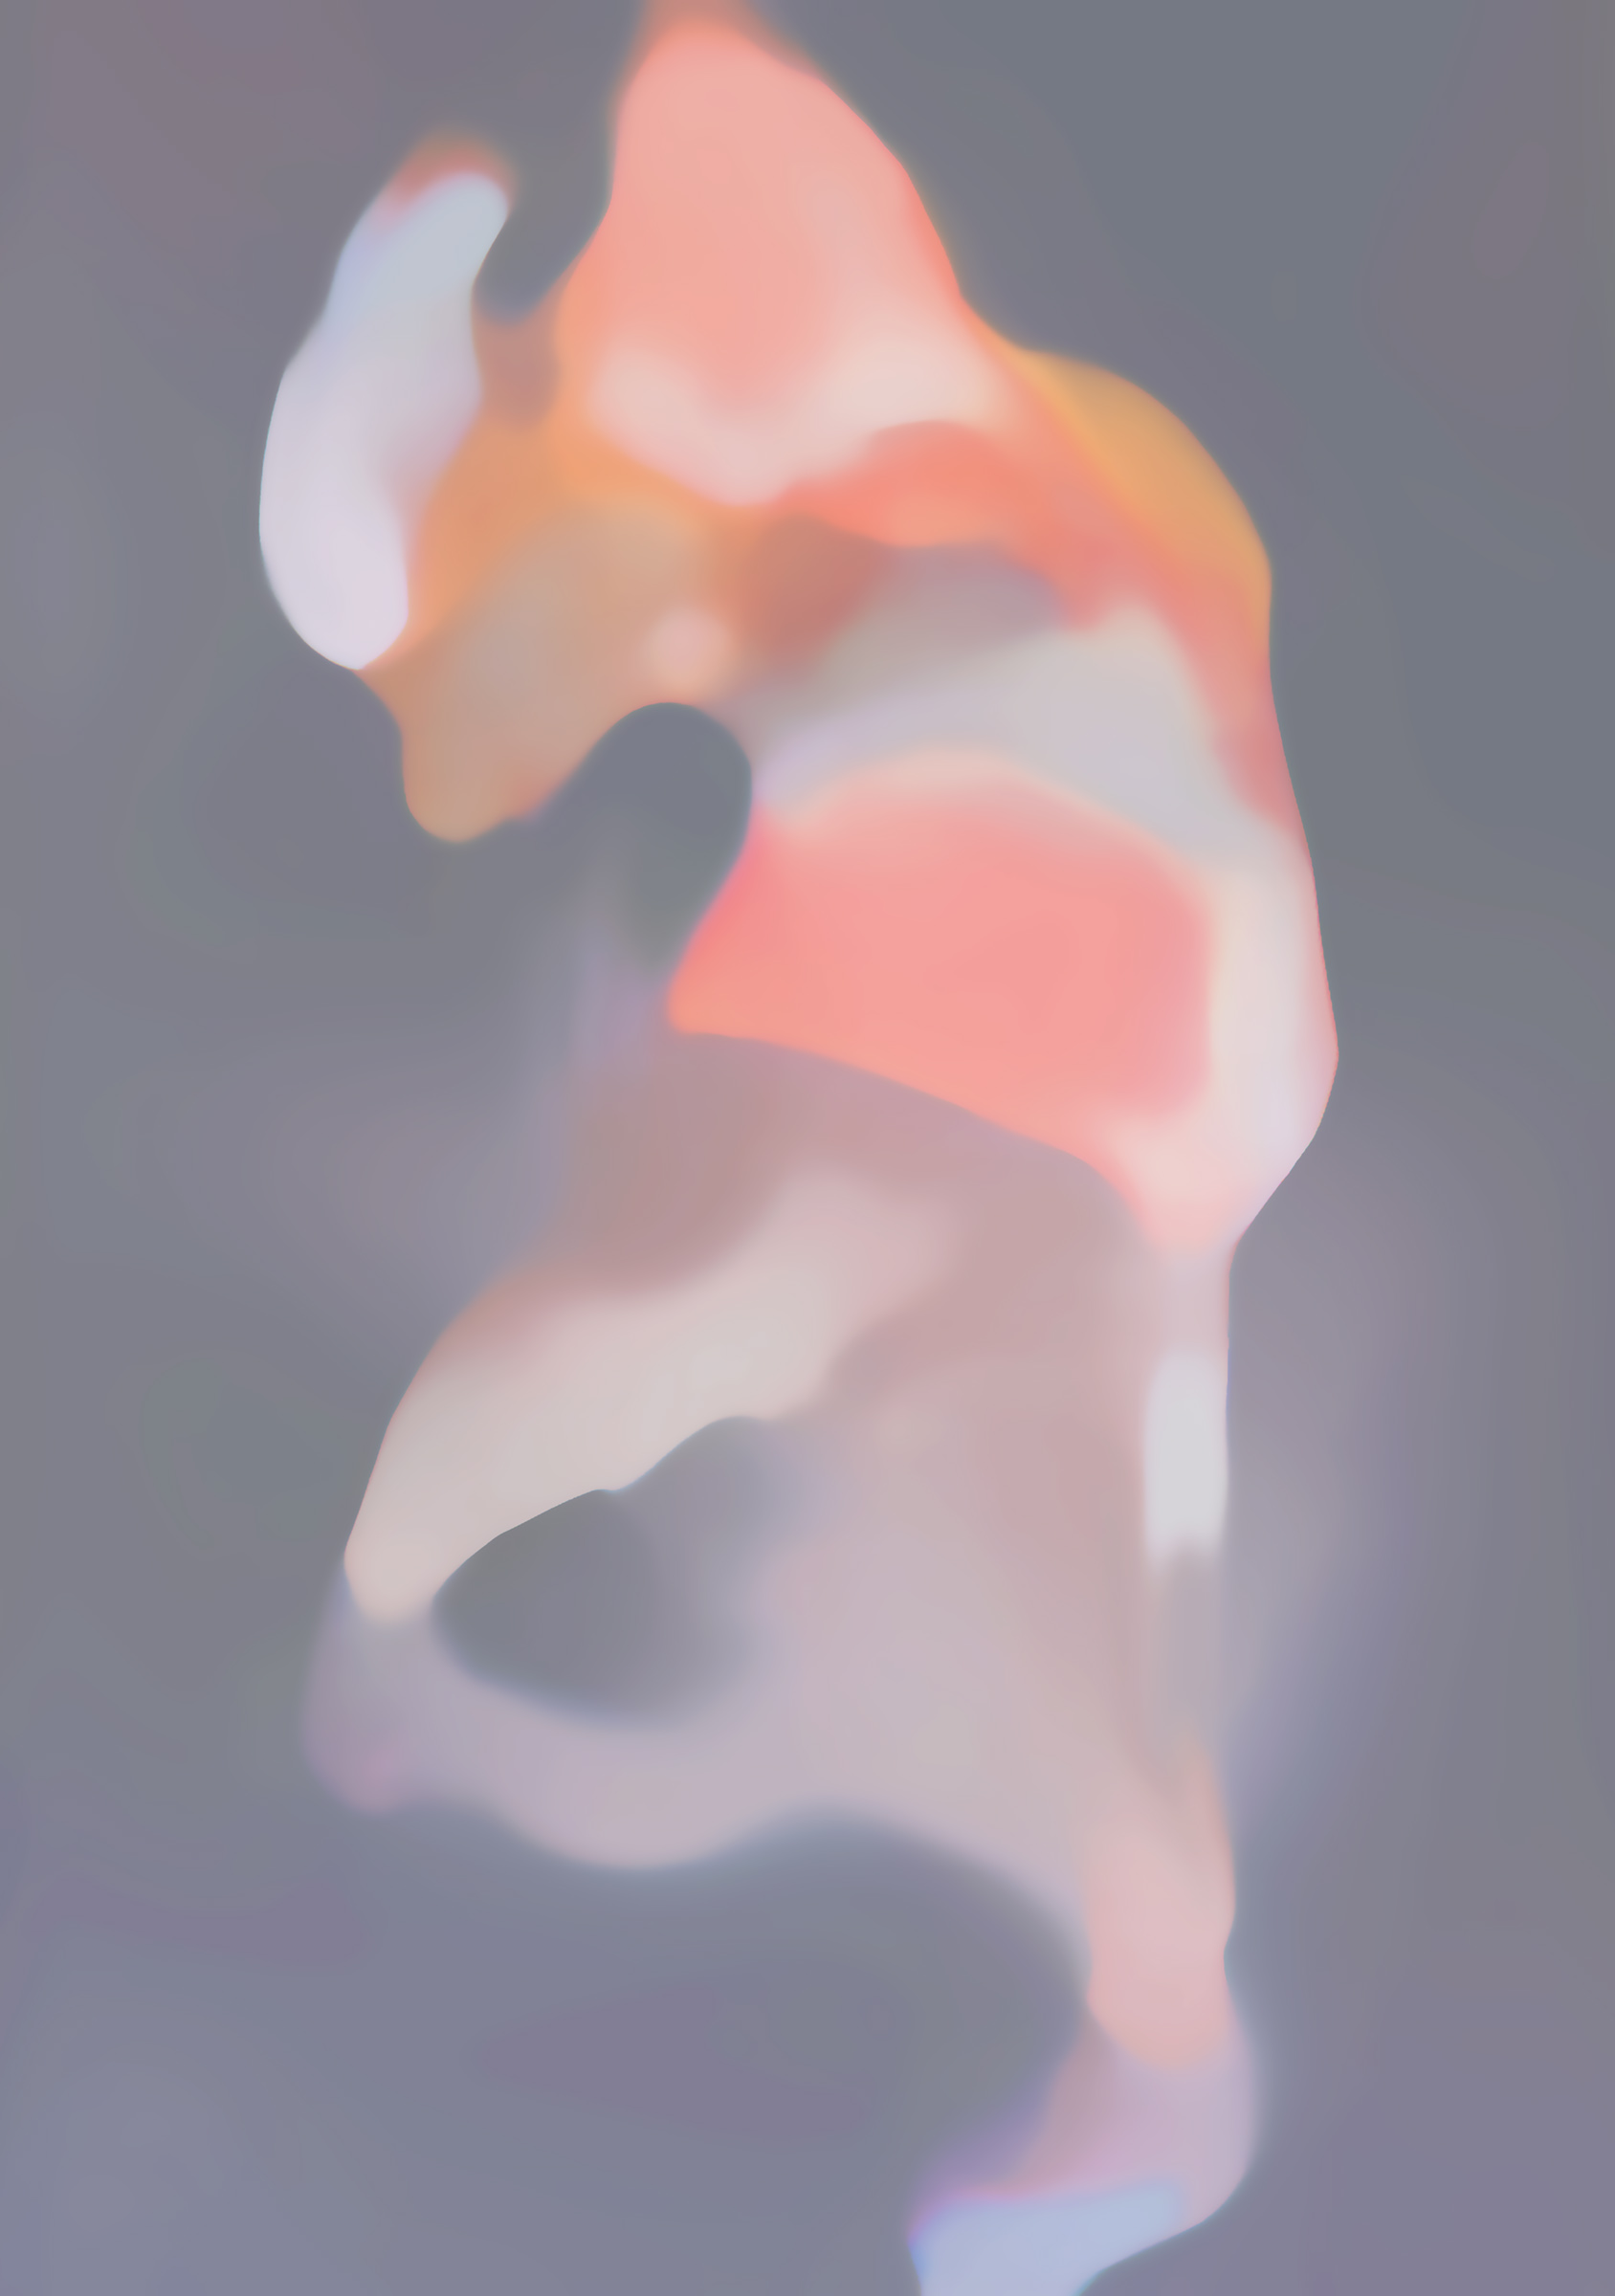 Illustration by Jennis Cheng Tien Li